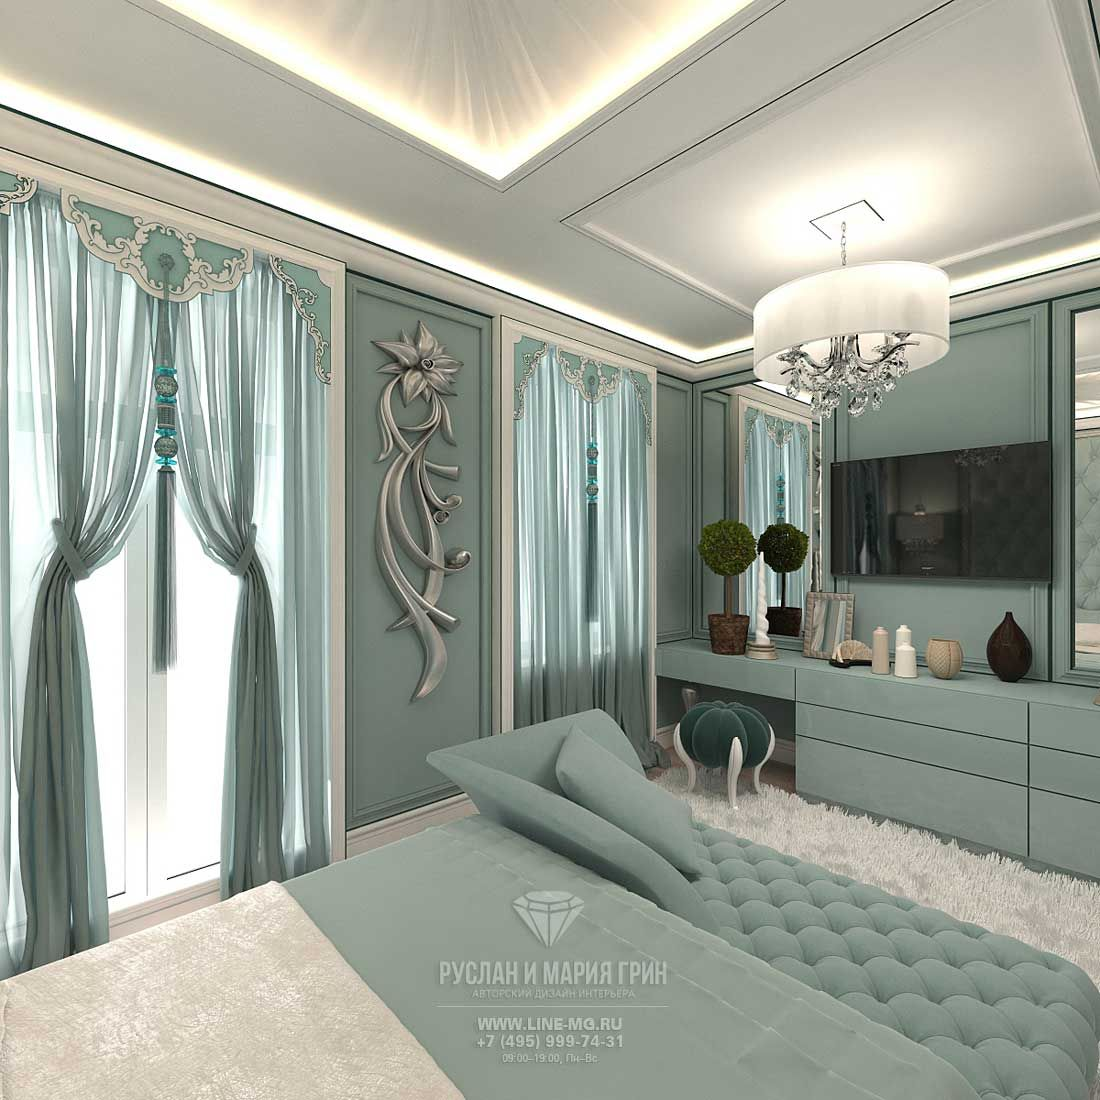 modern bedroom design idea in a townhouse - Townhouse Bedroom Design